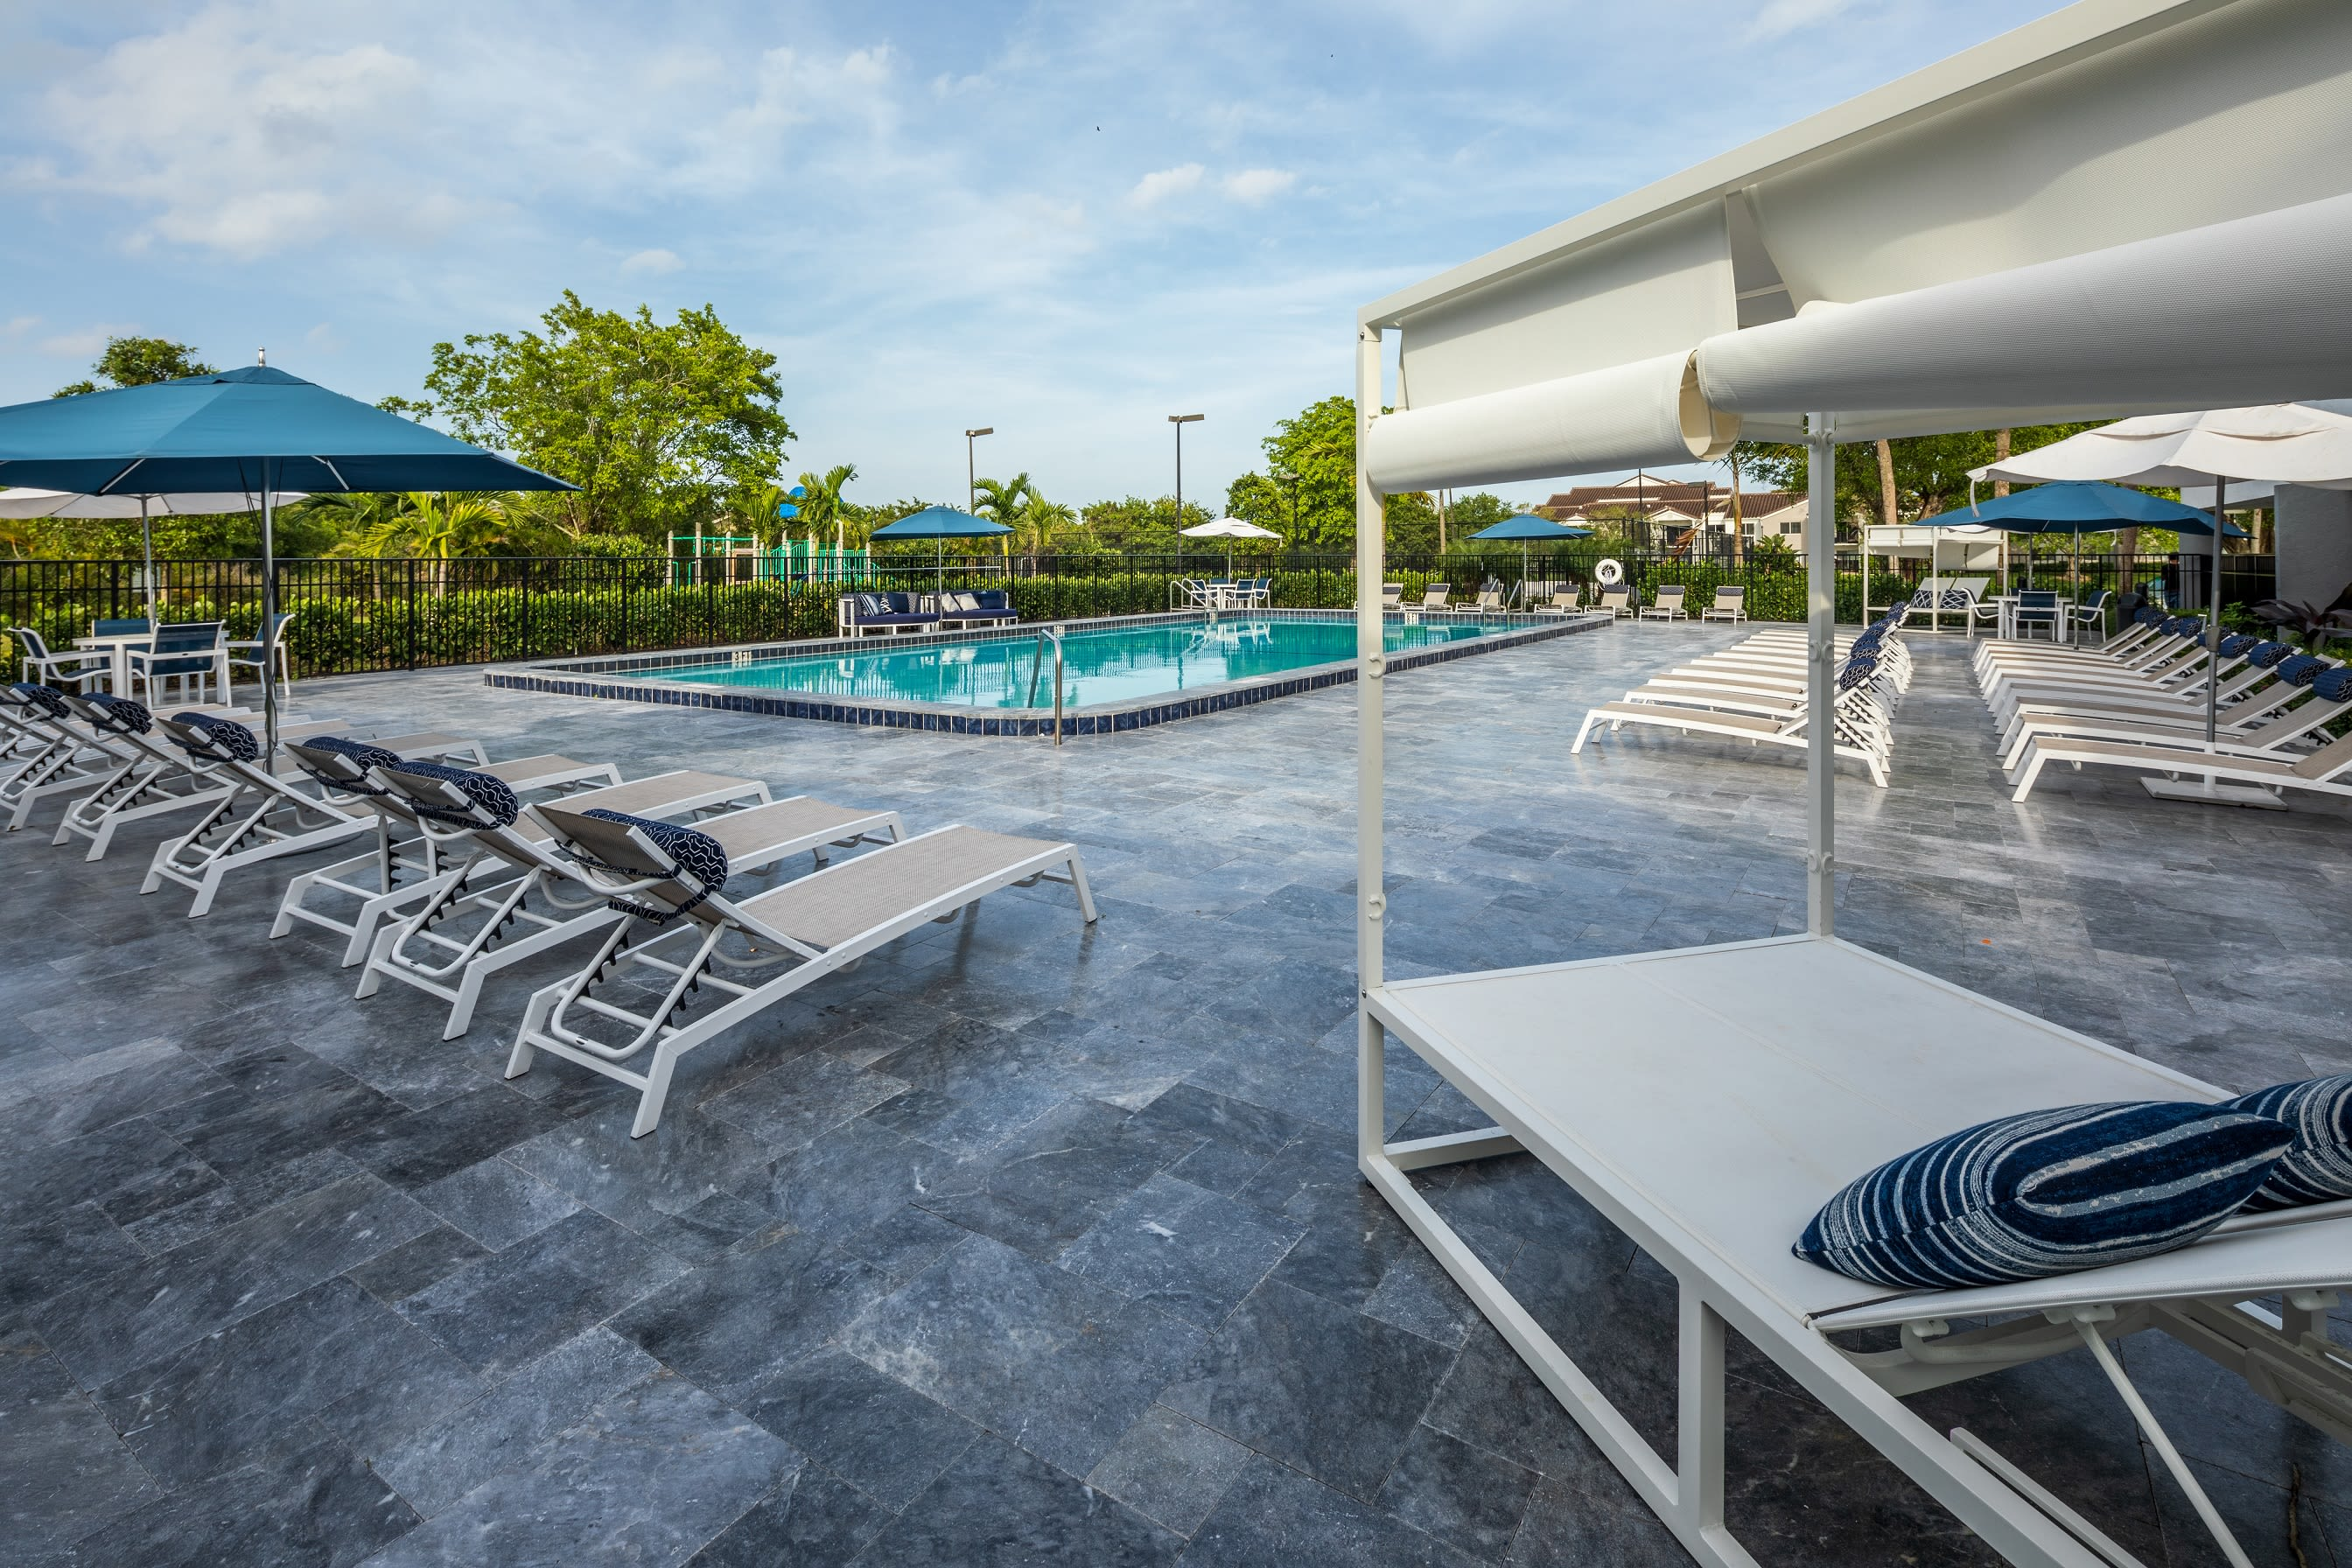 Beautiful outdoor pool with lounge chairs at Cielo Boca in Boca Raton, Florida